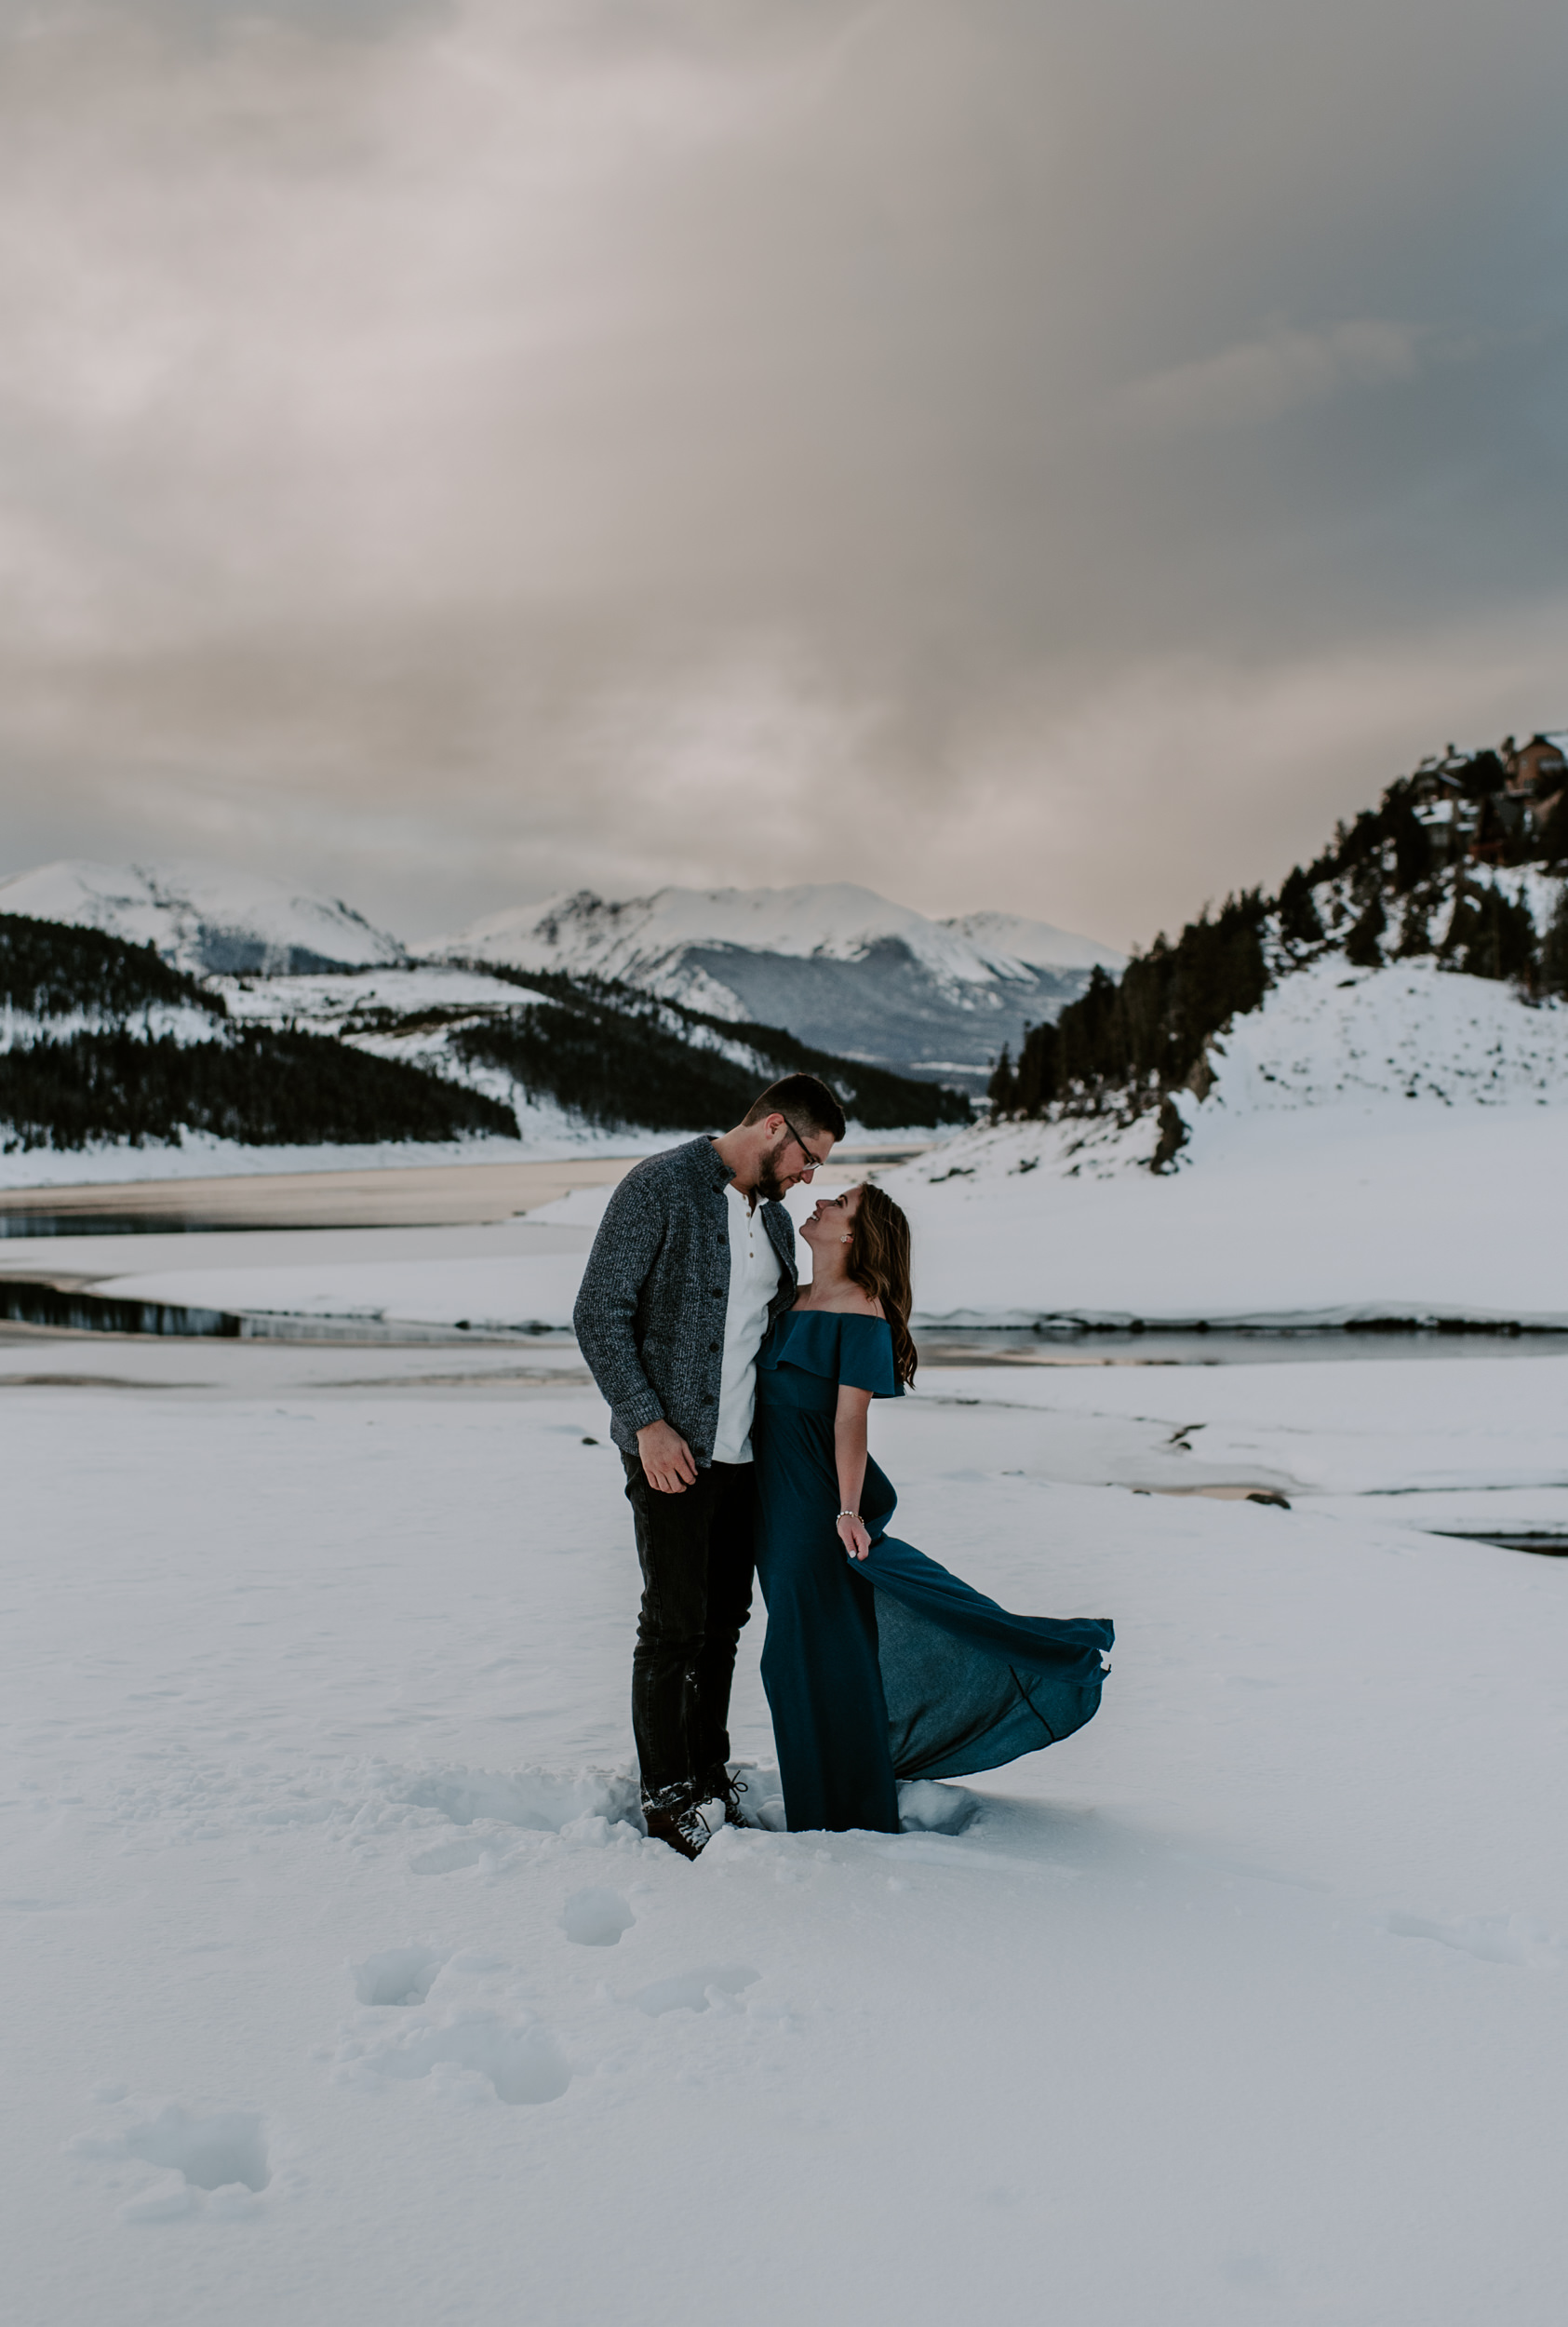 Adventure engagement session in Breckenridge, Colorado. Engagement photos at Lake Dillon. Colorado mountain wedding and elopement photography.